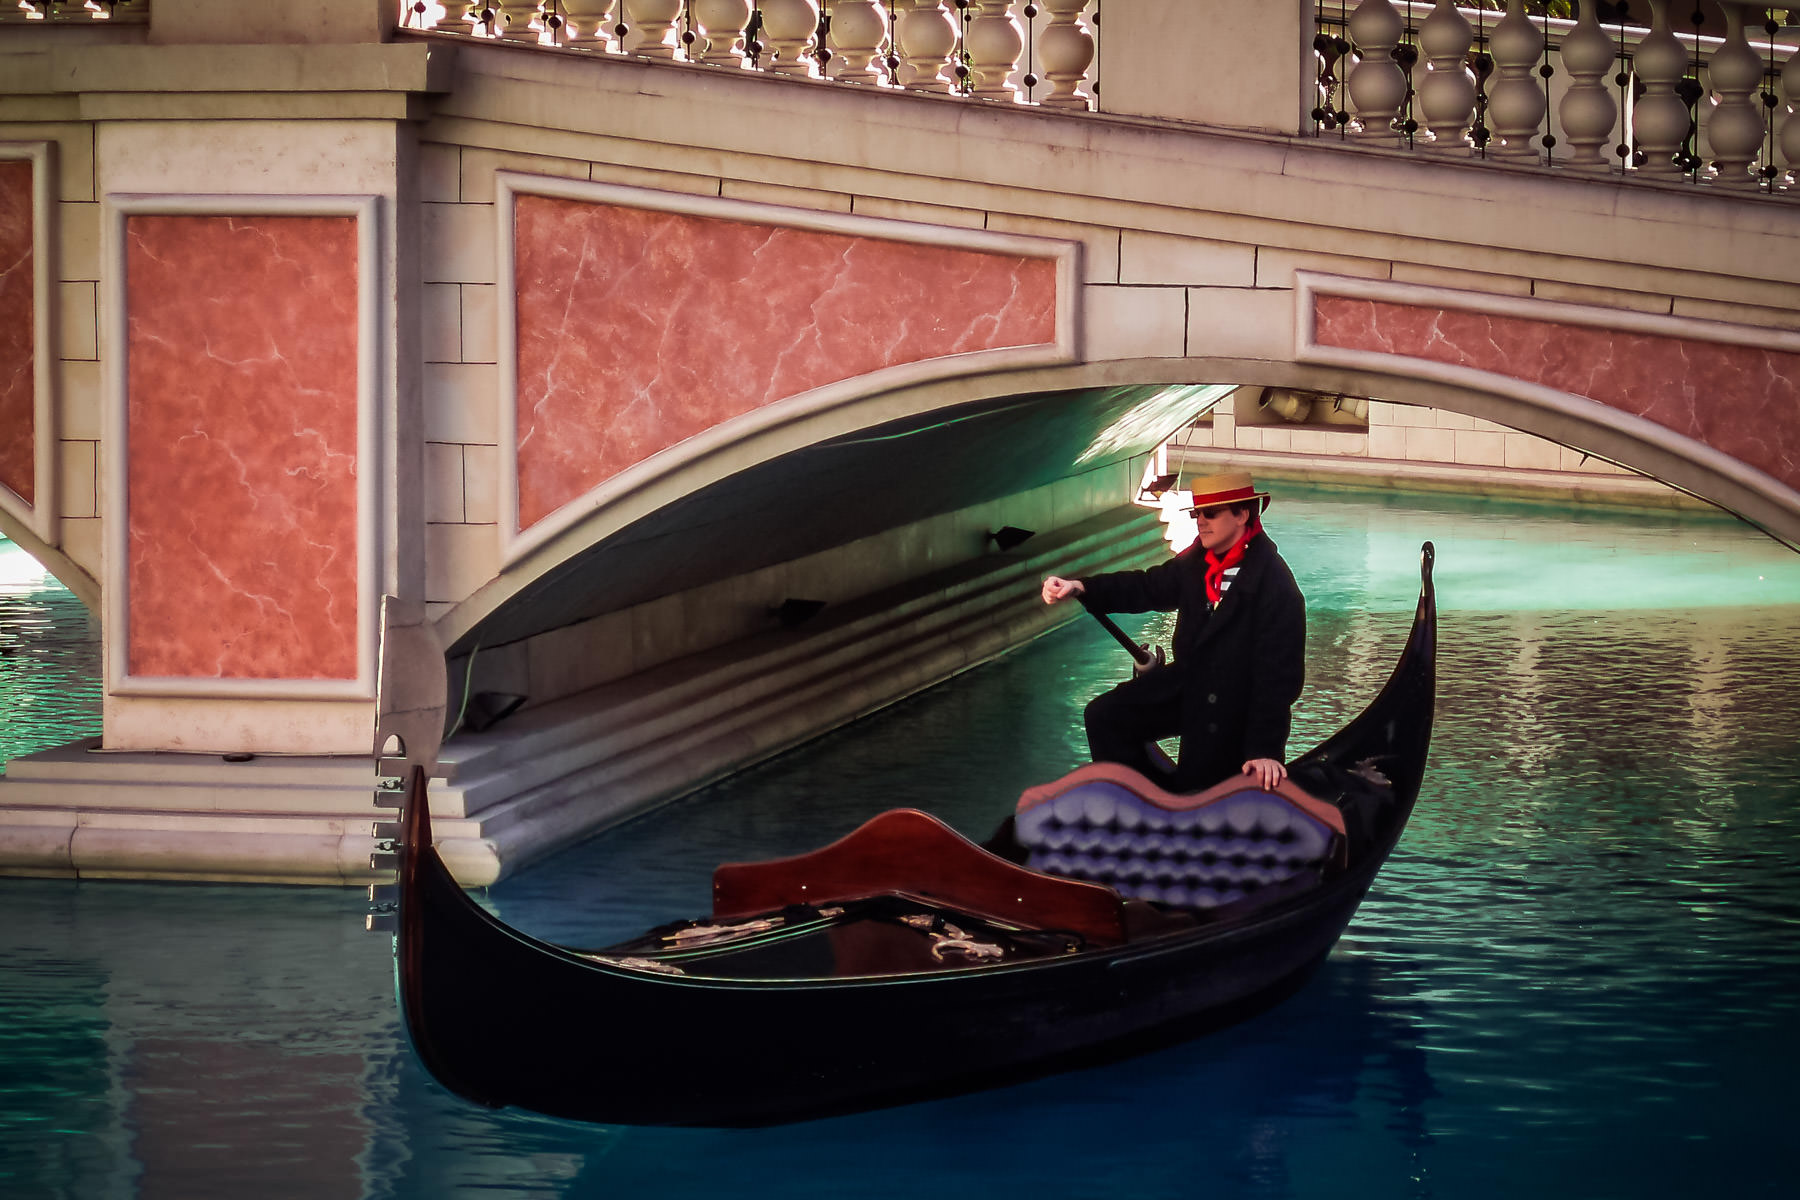 A gondolier in his gondola at The Venetian in Las Vegas.